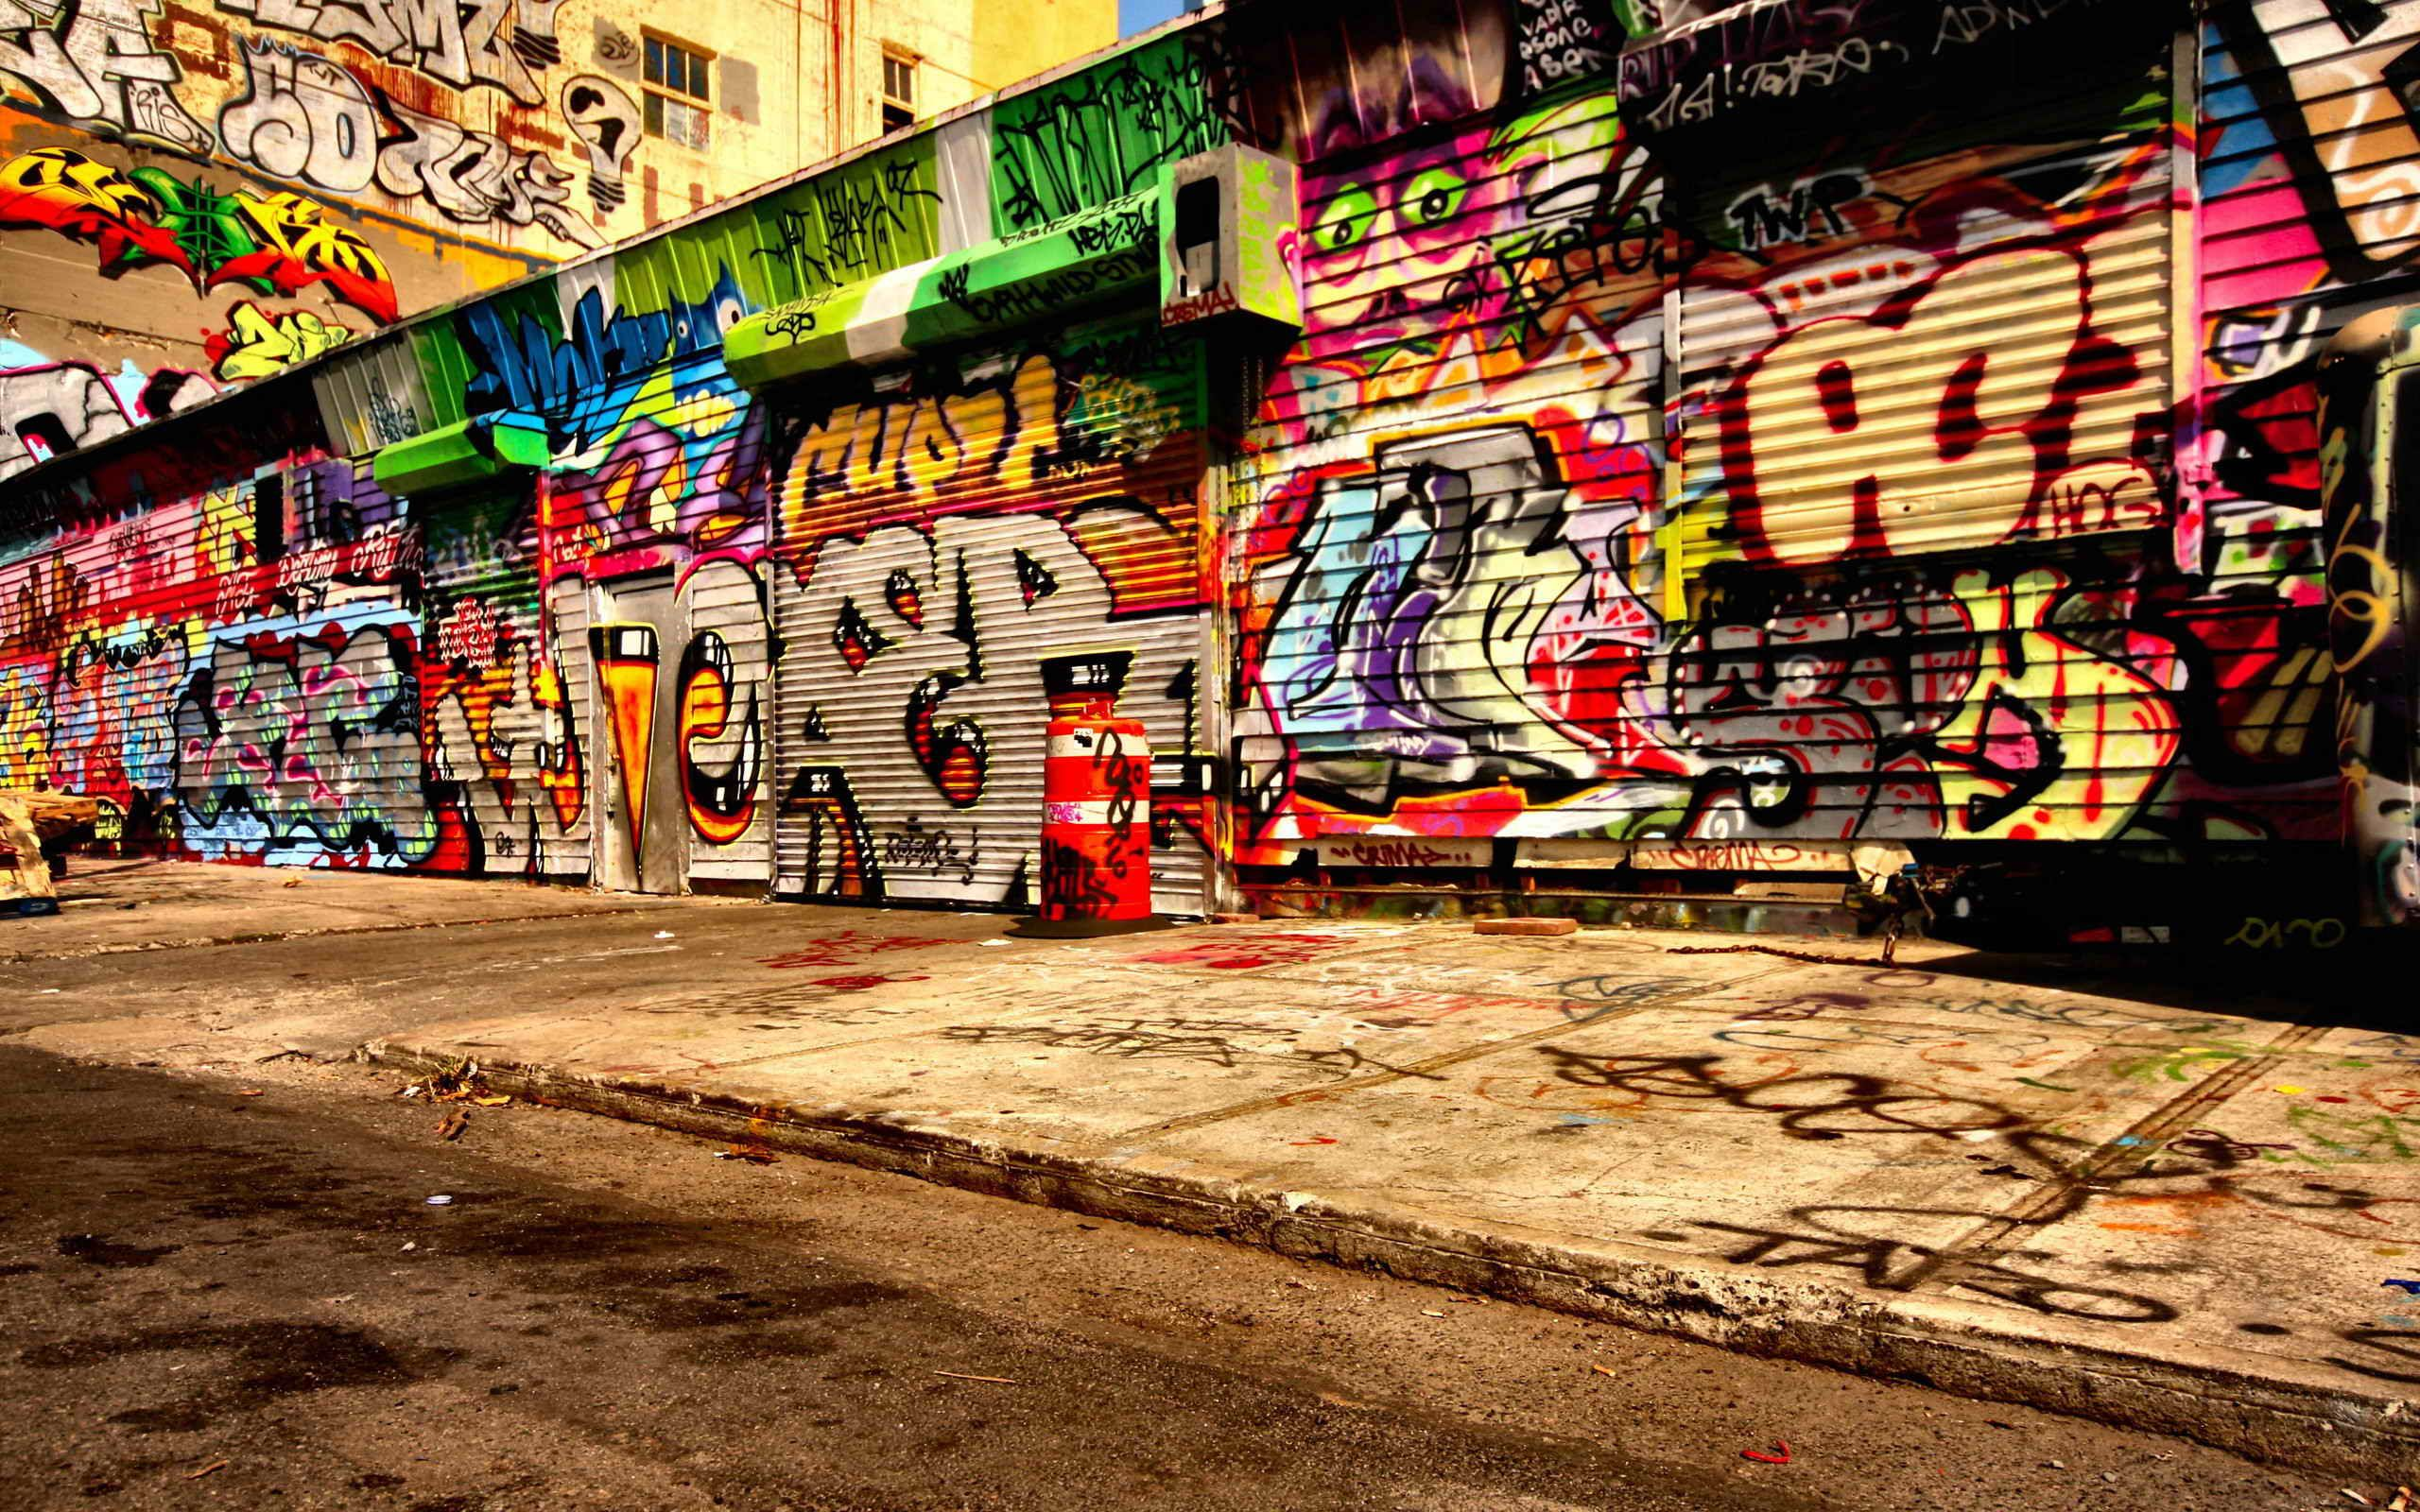 Graffiti wall toronto downtown - A Long And Large Stretch Of Graffiti Art Work Painted On Front Of Stores Description